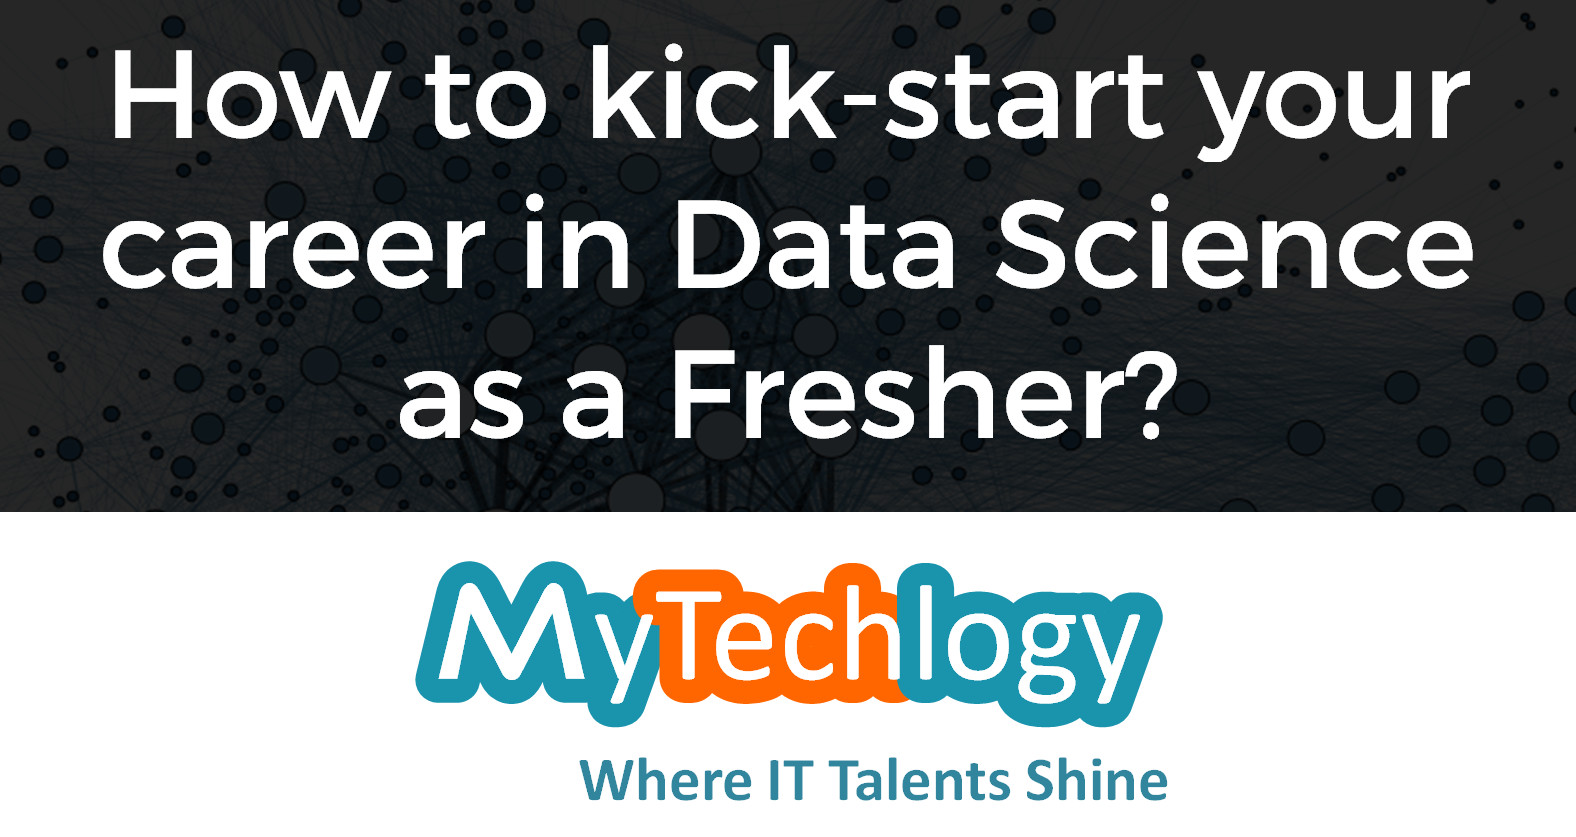 How can a Fresher get into a Data Science career? (Part 1) - Image 1